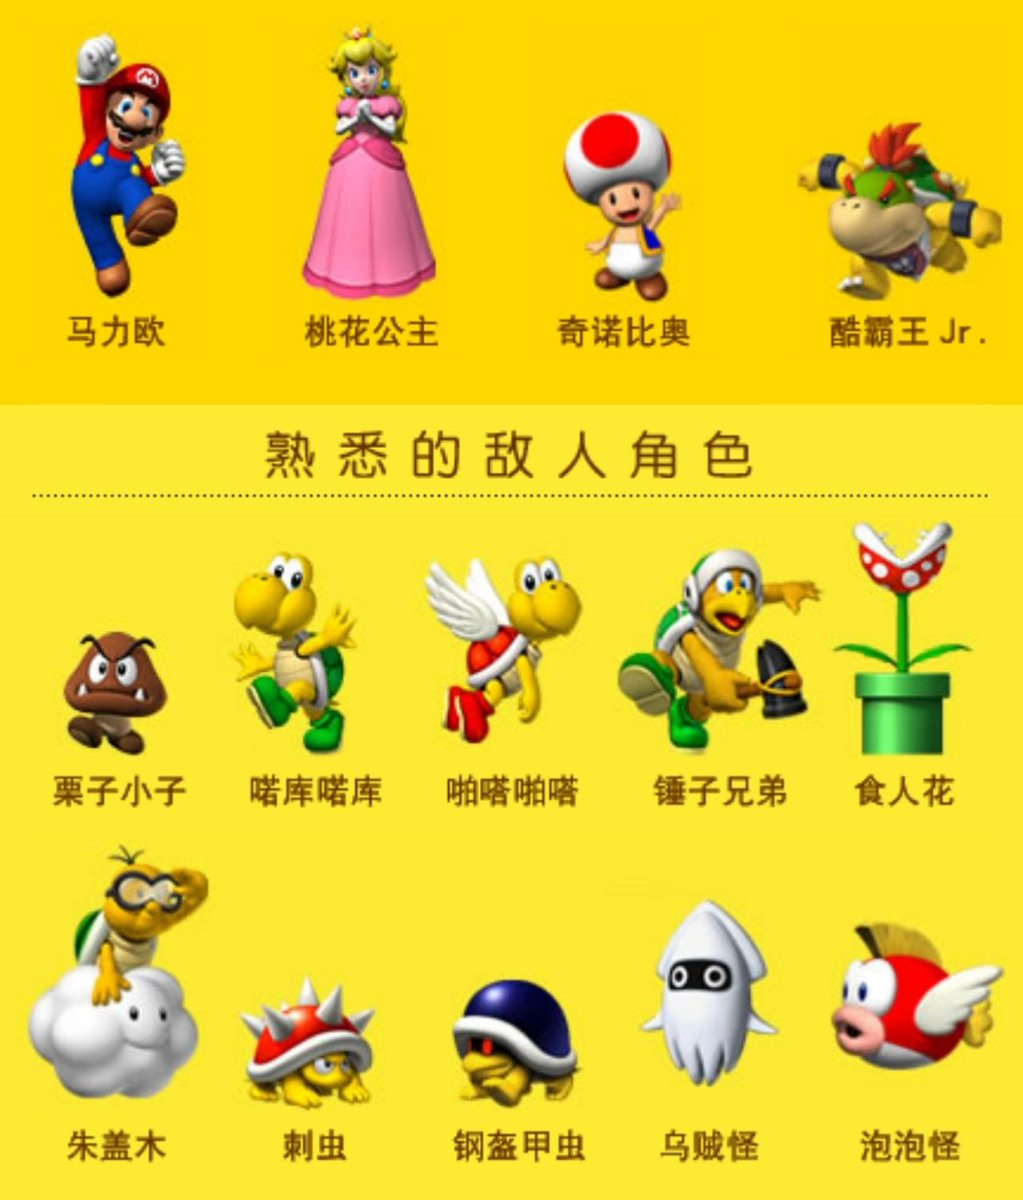 Chinese Nintendo On Twitter Character Names In S Chinese